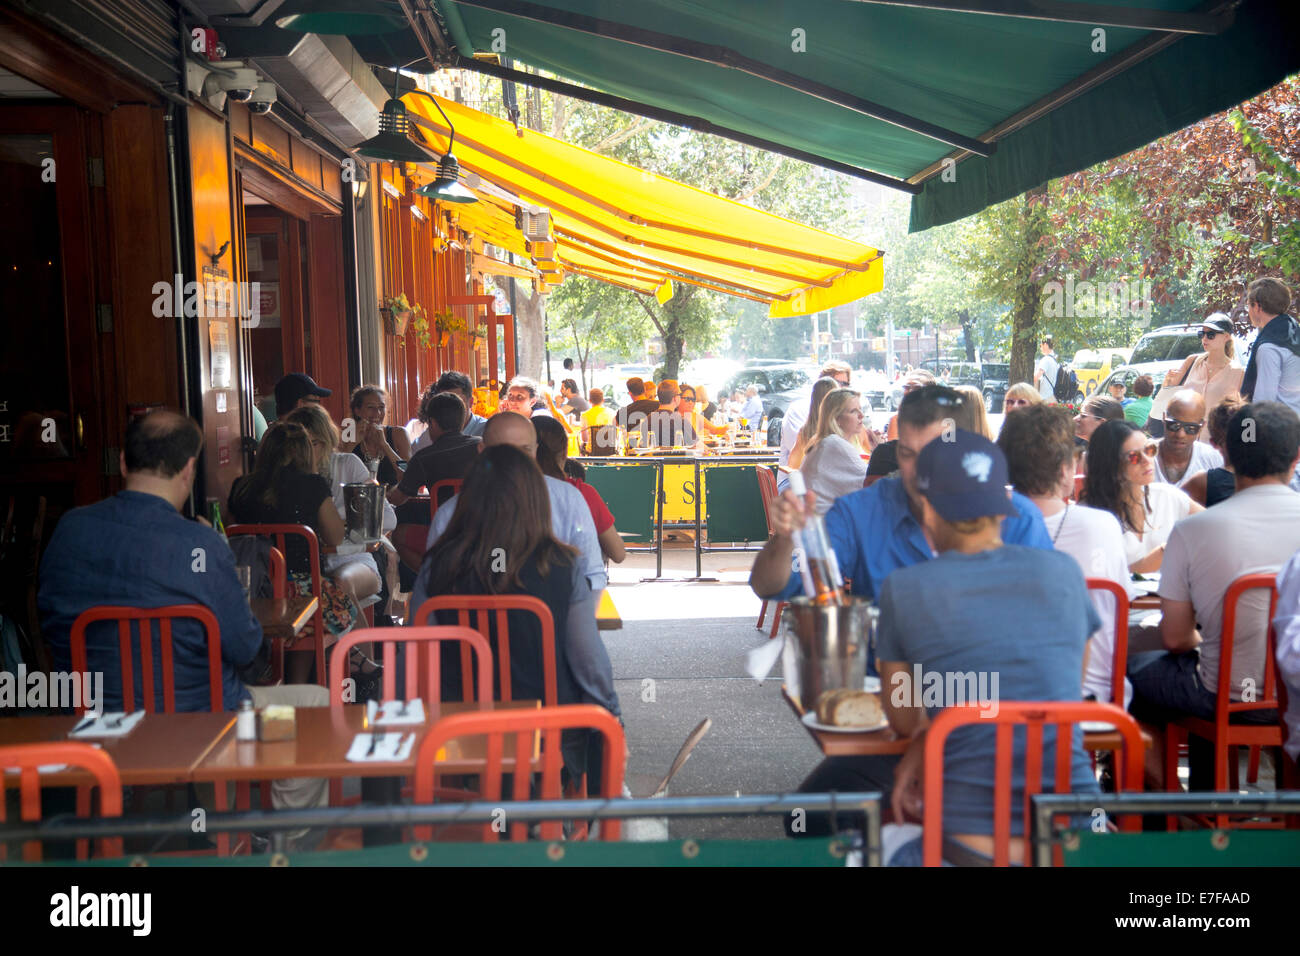 Greenwich Village restaurant al fresco dining sunday brunch - Stock Image